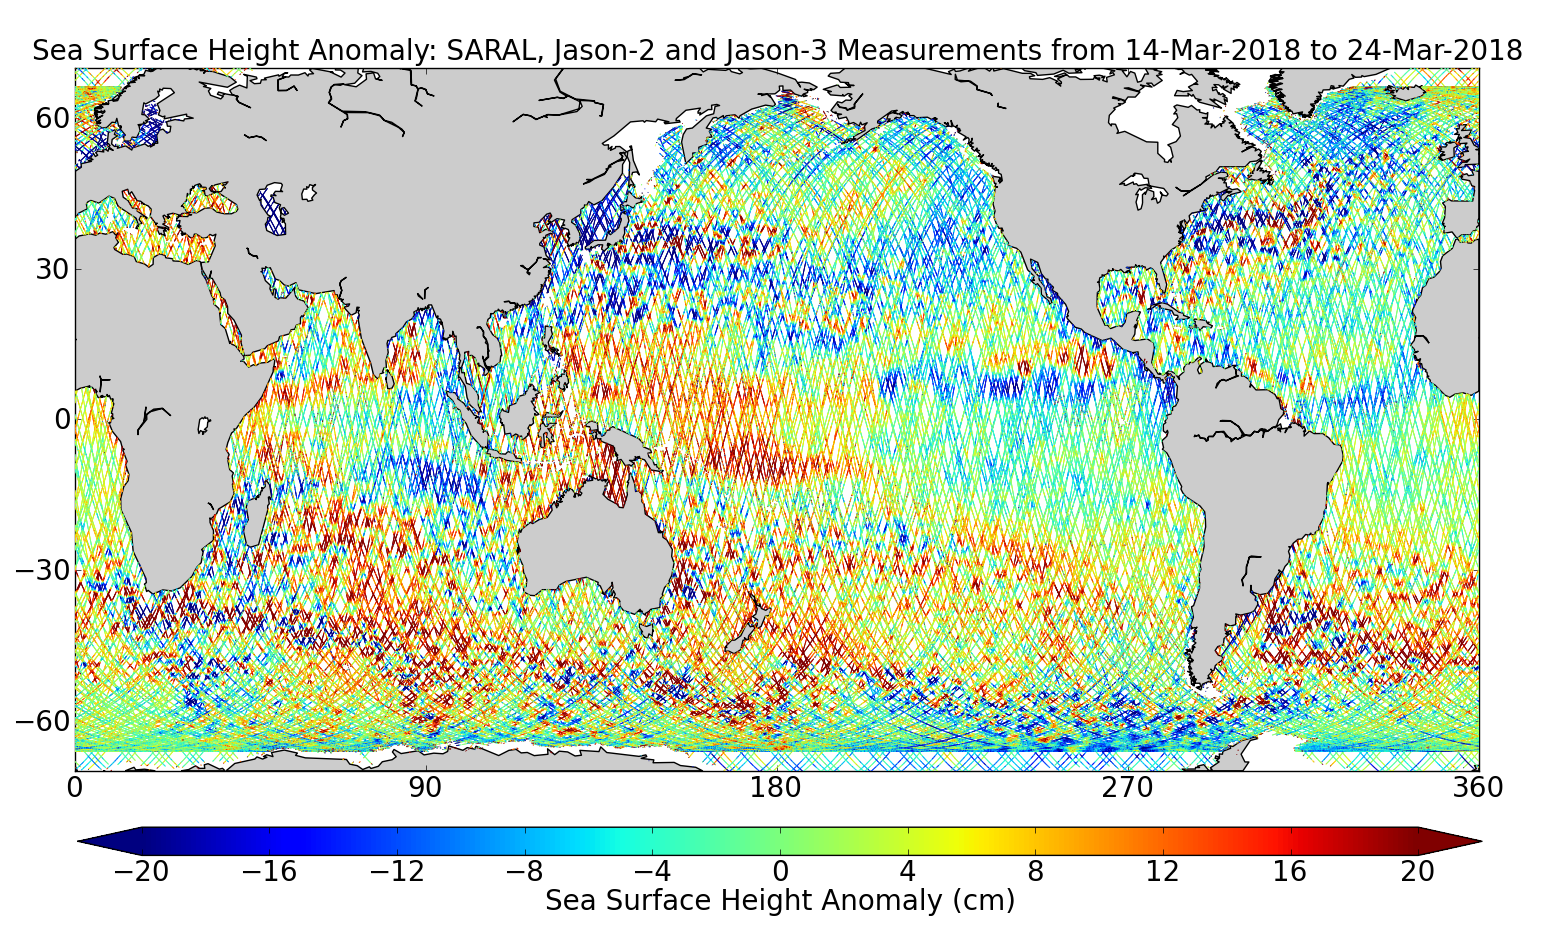 Sea Surface Height Anomaly: SARAL, Jason-2 and Jason-3 Measurements from 14-Mar-2018 to 24-Mar-2018